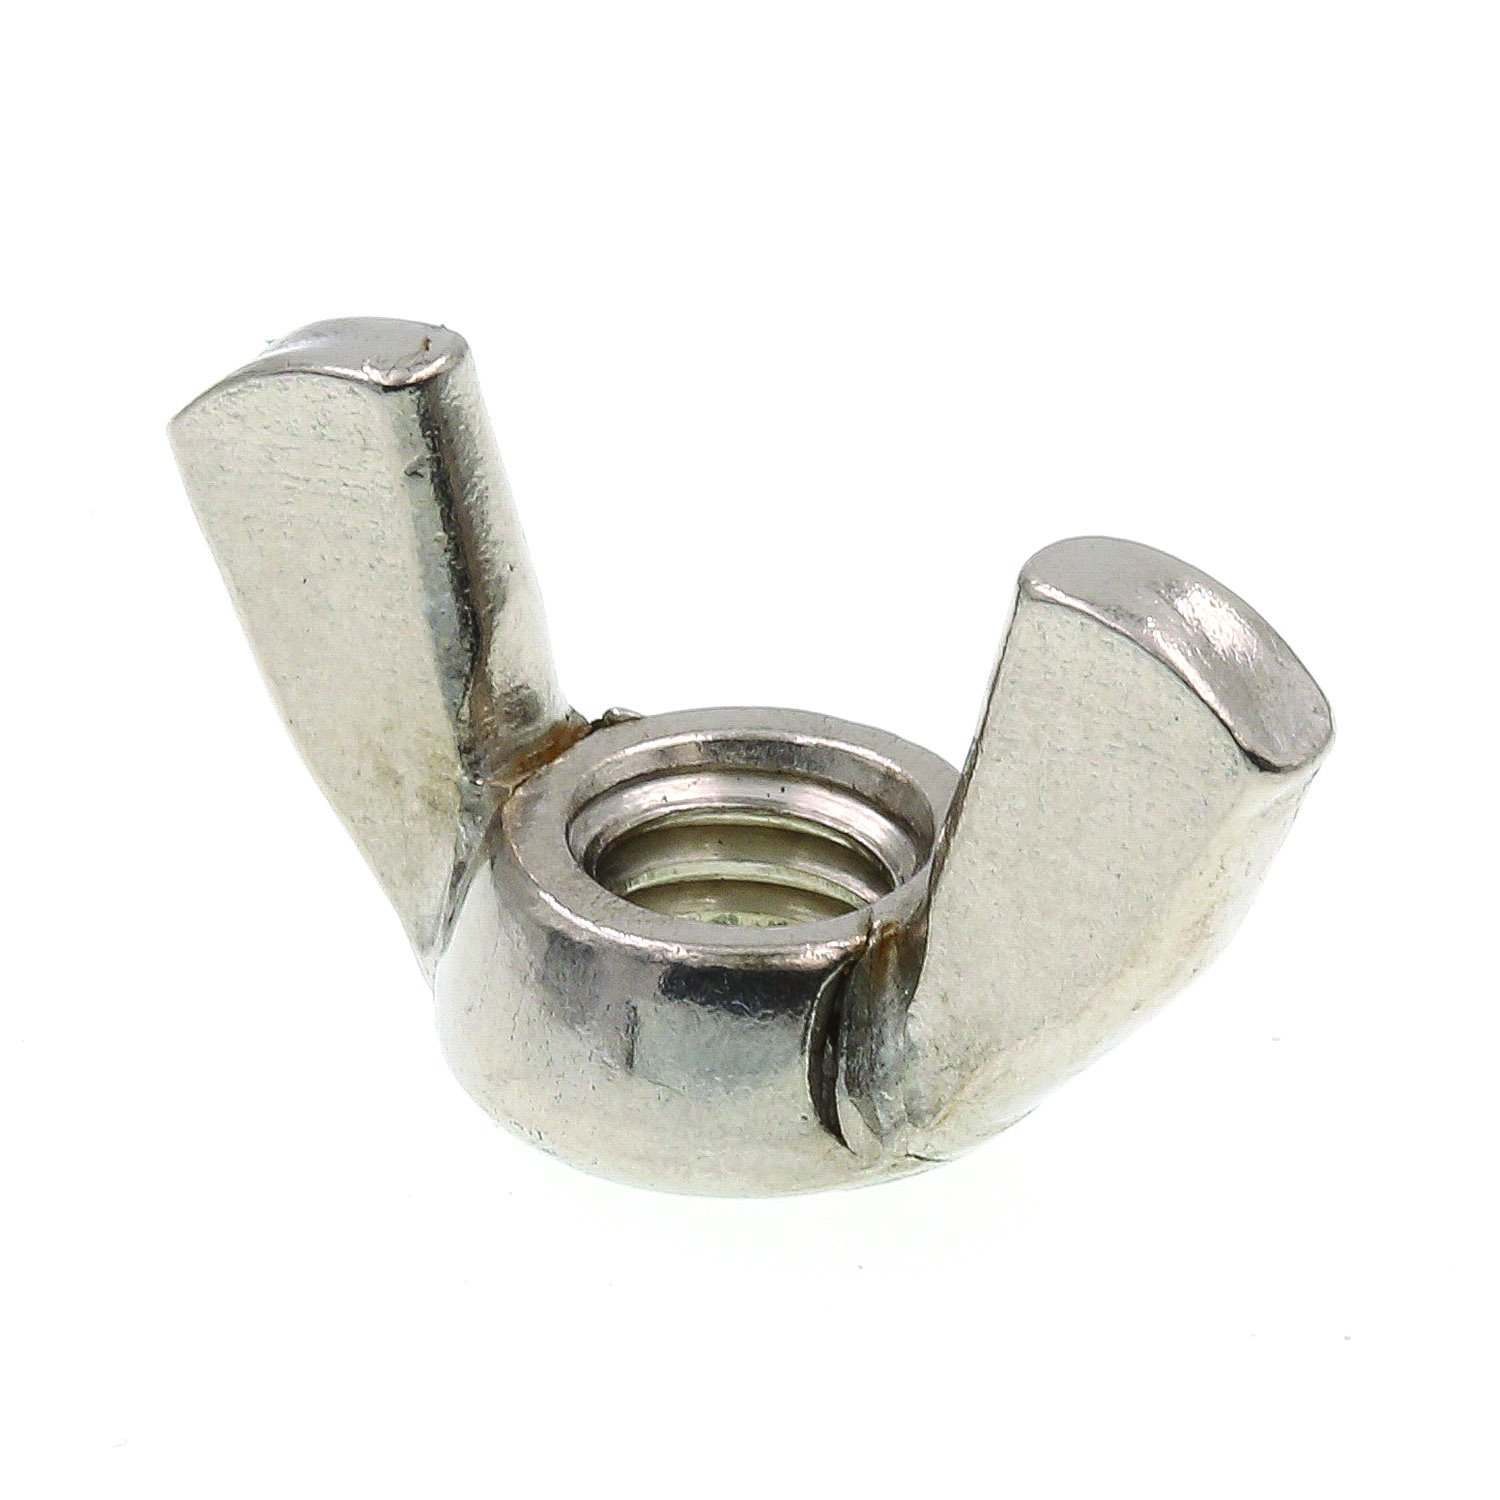 #10-32 Cold-Forged 25-Pack Grade 18-8 Stainless Steel Prime-Line 9076339 Wing Nuts